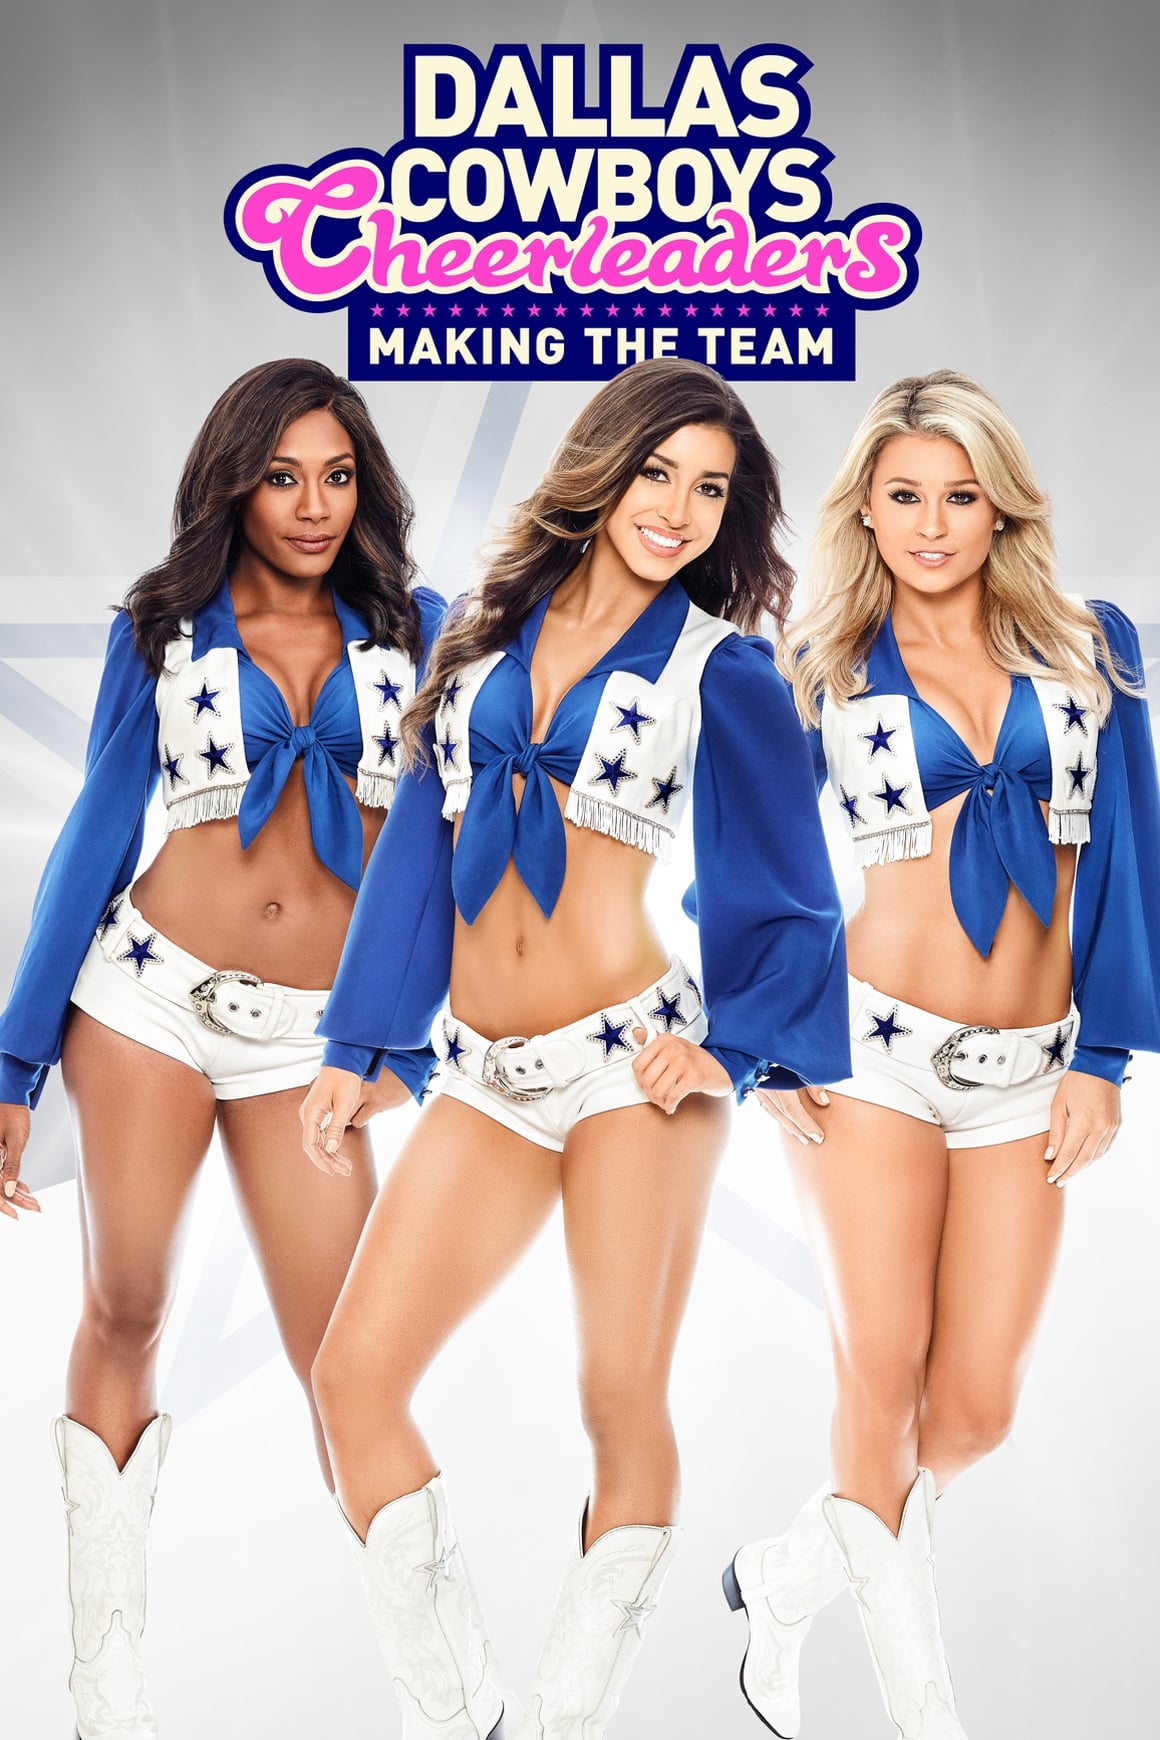 image for Dallas Cowboys Cheerleaders: Making the Team